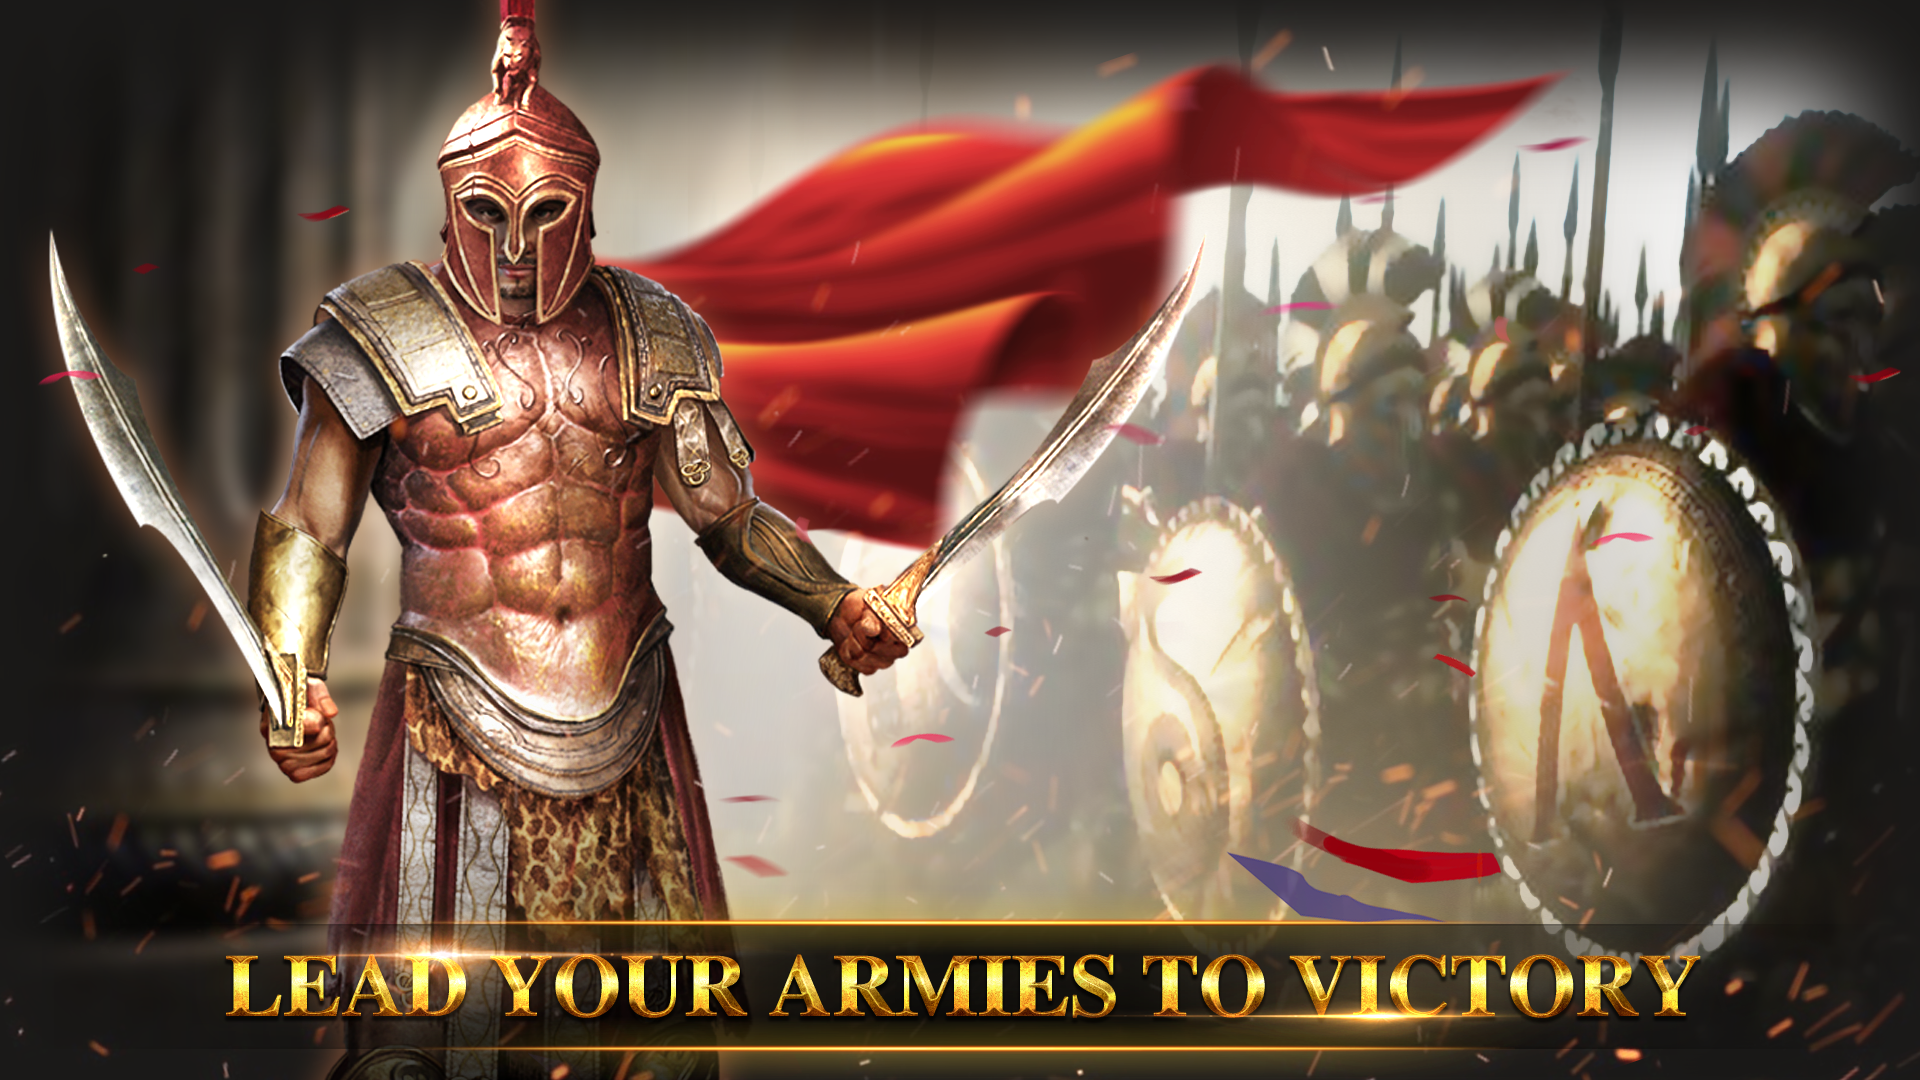 spartan warrior holding 2 swords in full armor with army of spartans